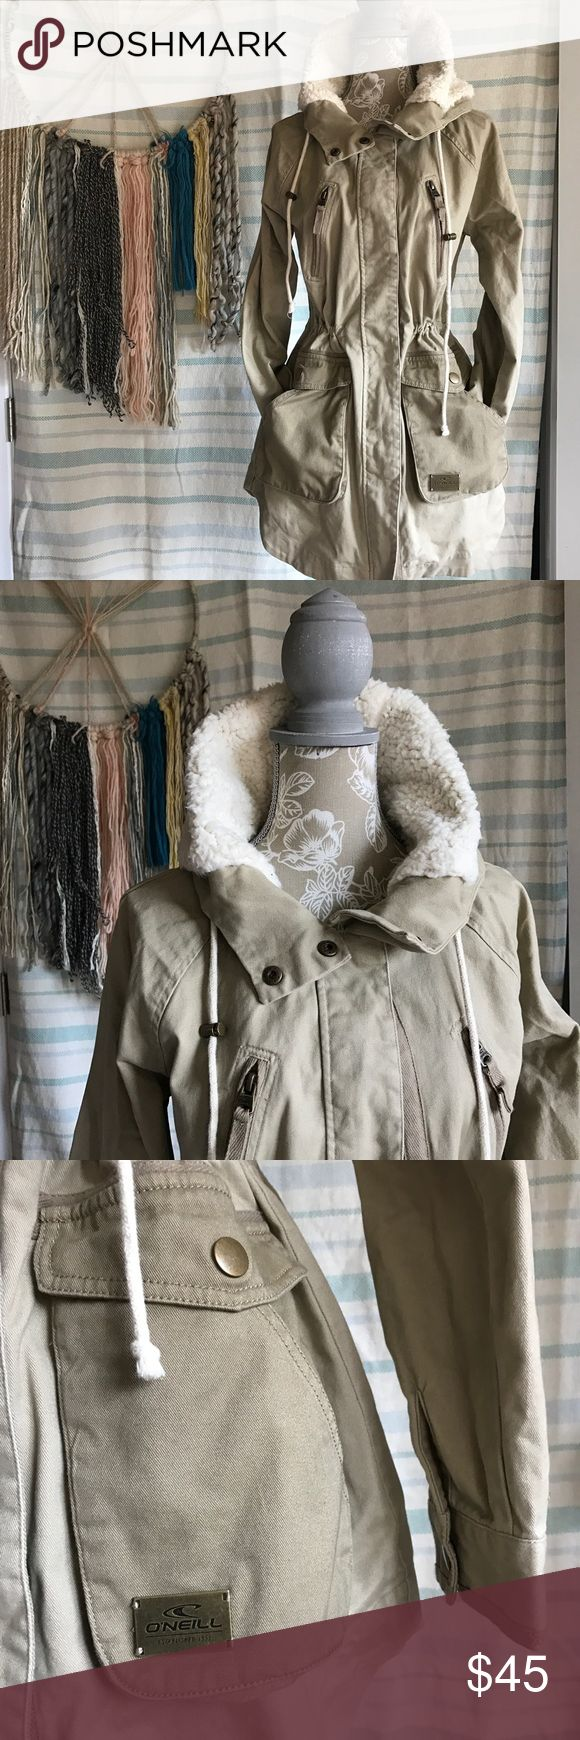 🐑O'Neill faux jacket Never been used new without tags O'Neill jacket size small. The hoodie has faux wool but it's really soft. Jacket is very flattering because there are drawstrings that accentuate the waist⭐️please ask questions⭐️please reference pictures⭐️ O'Neill Jackets & Coats Trench Coats